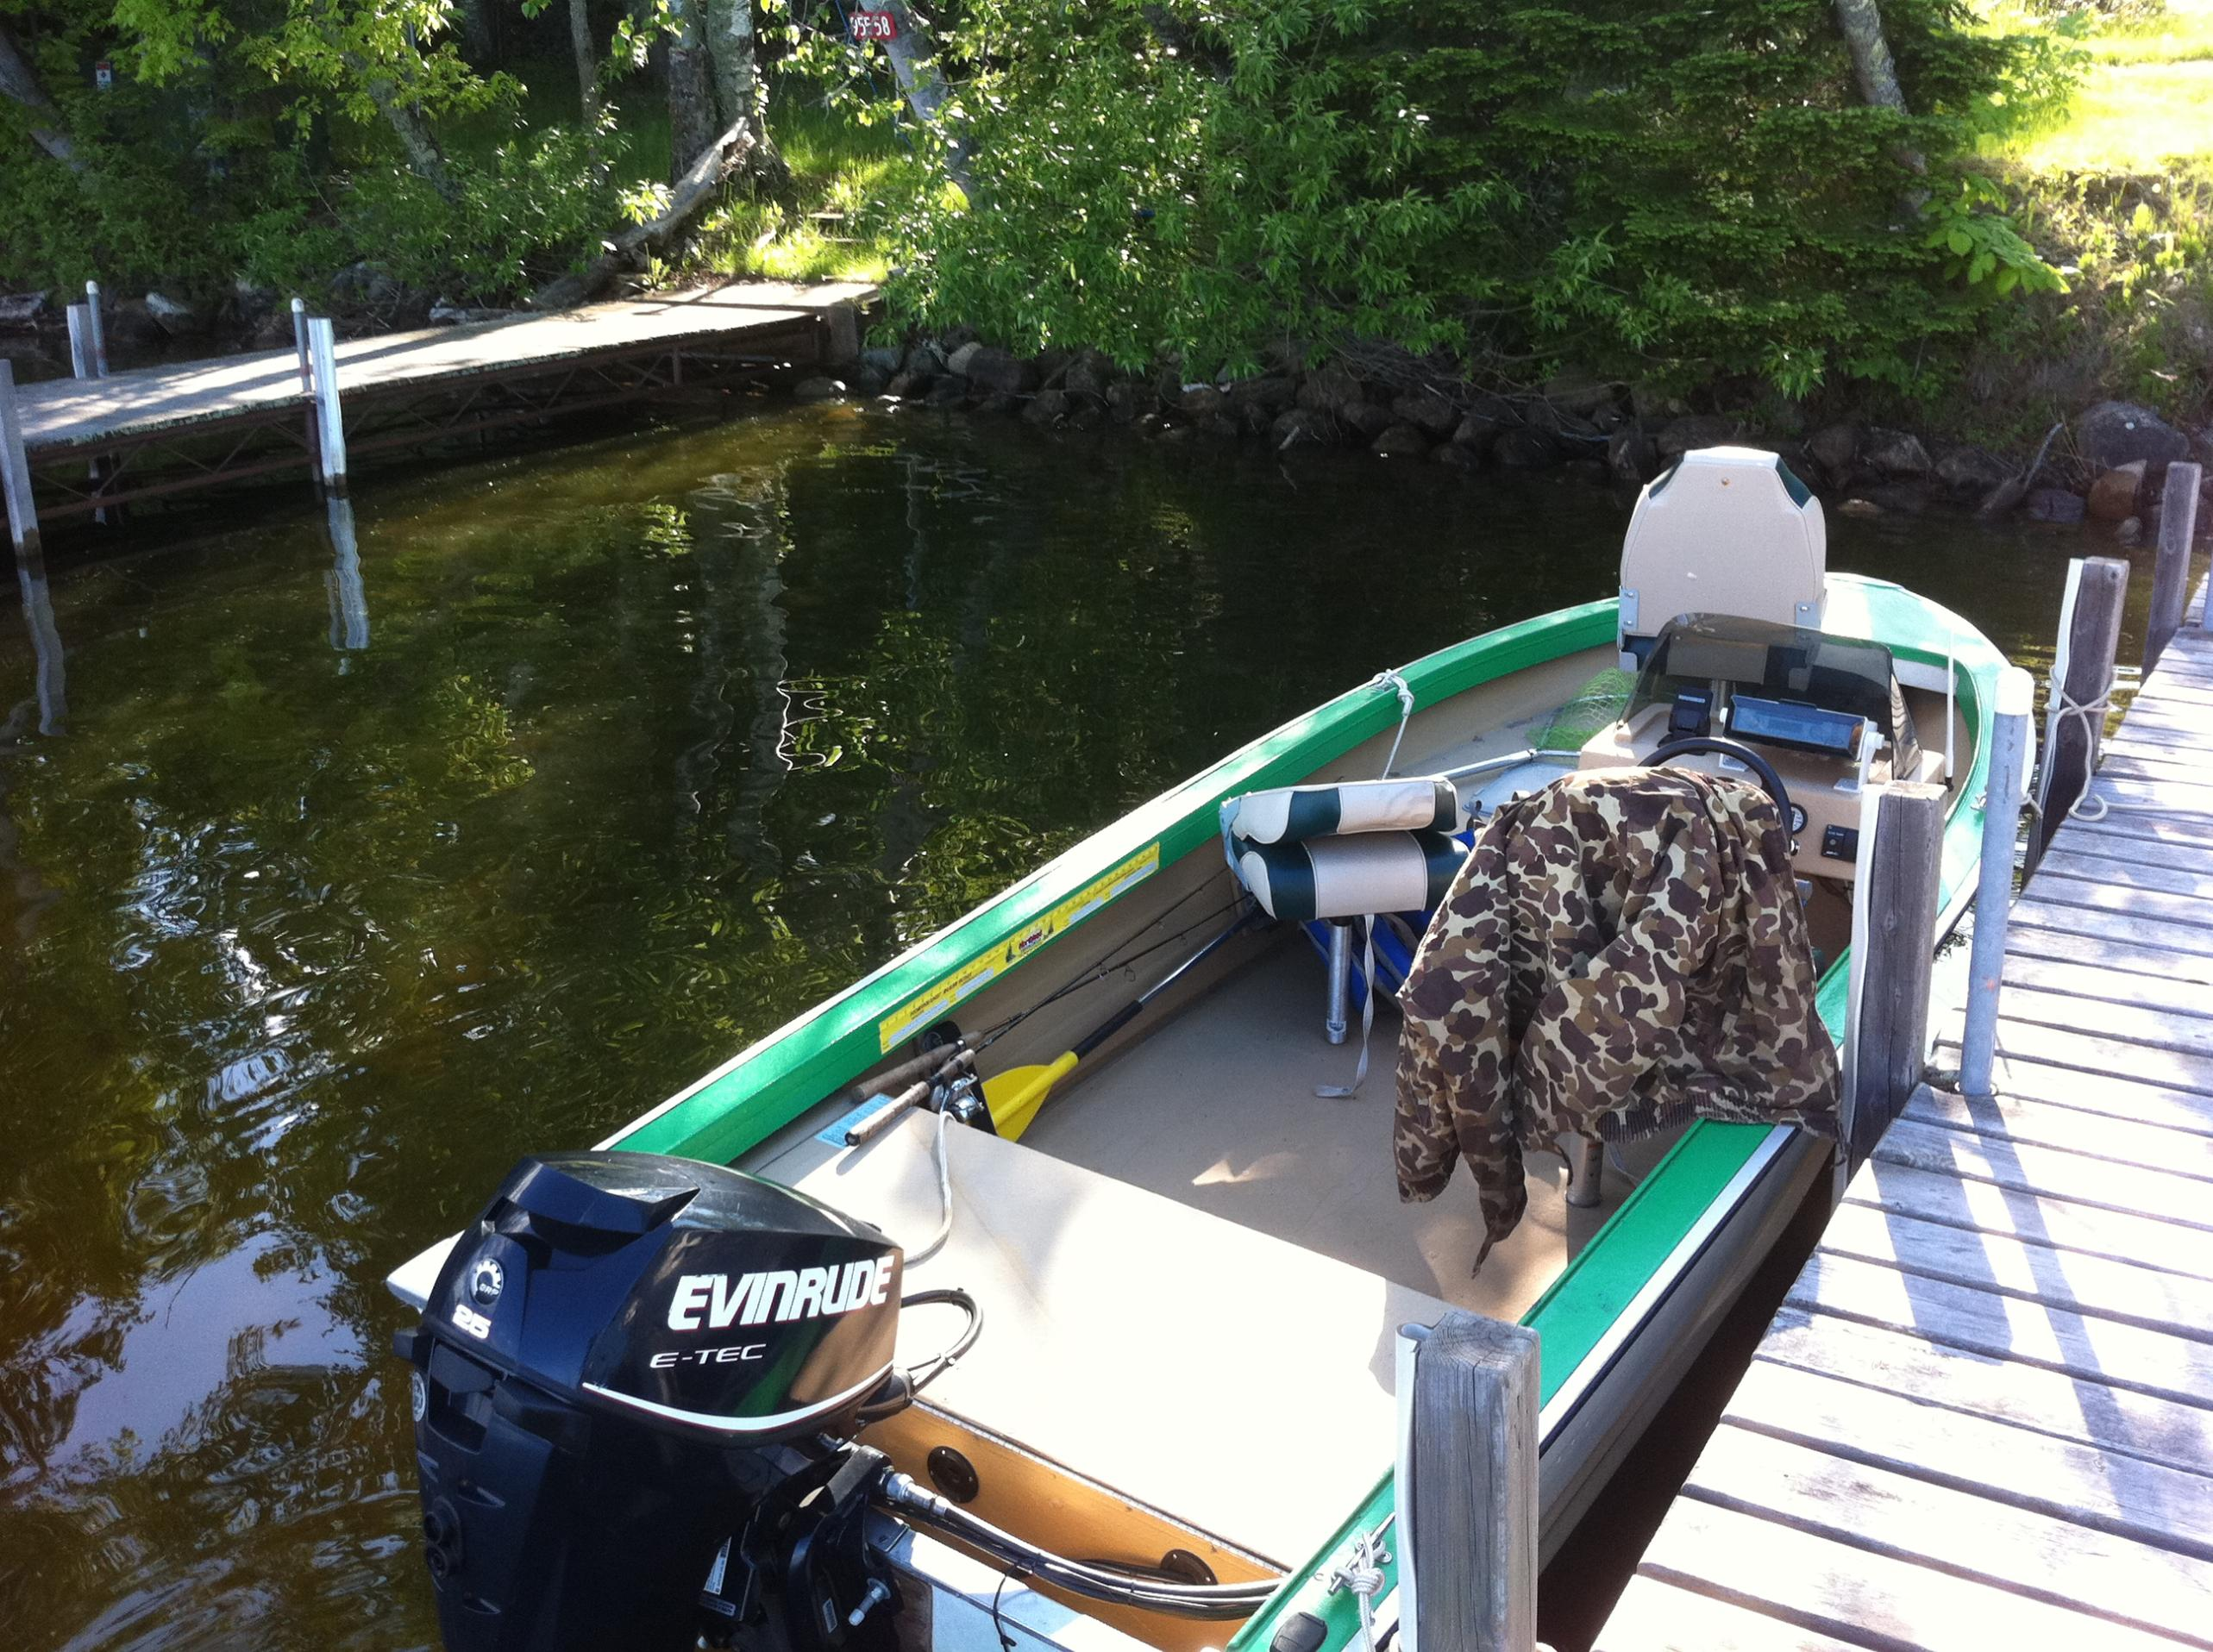 BWCA Evinrude E-Tec vs  Merc 4-stroke Boundary Waters